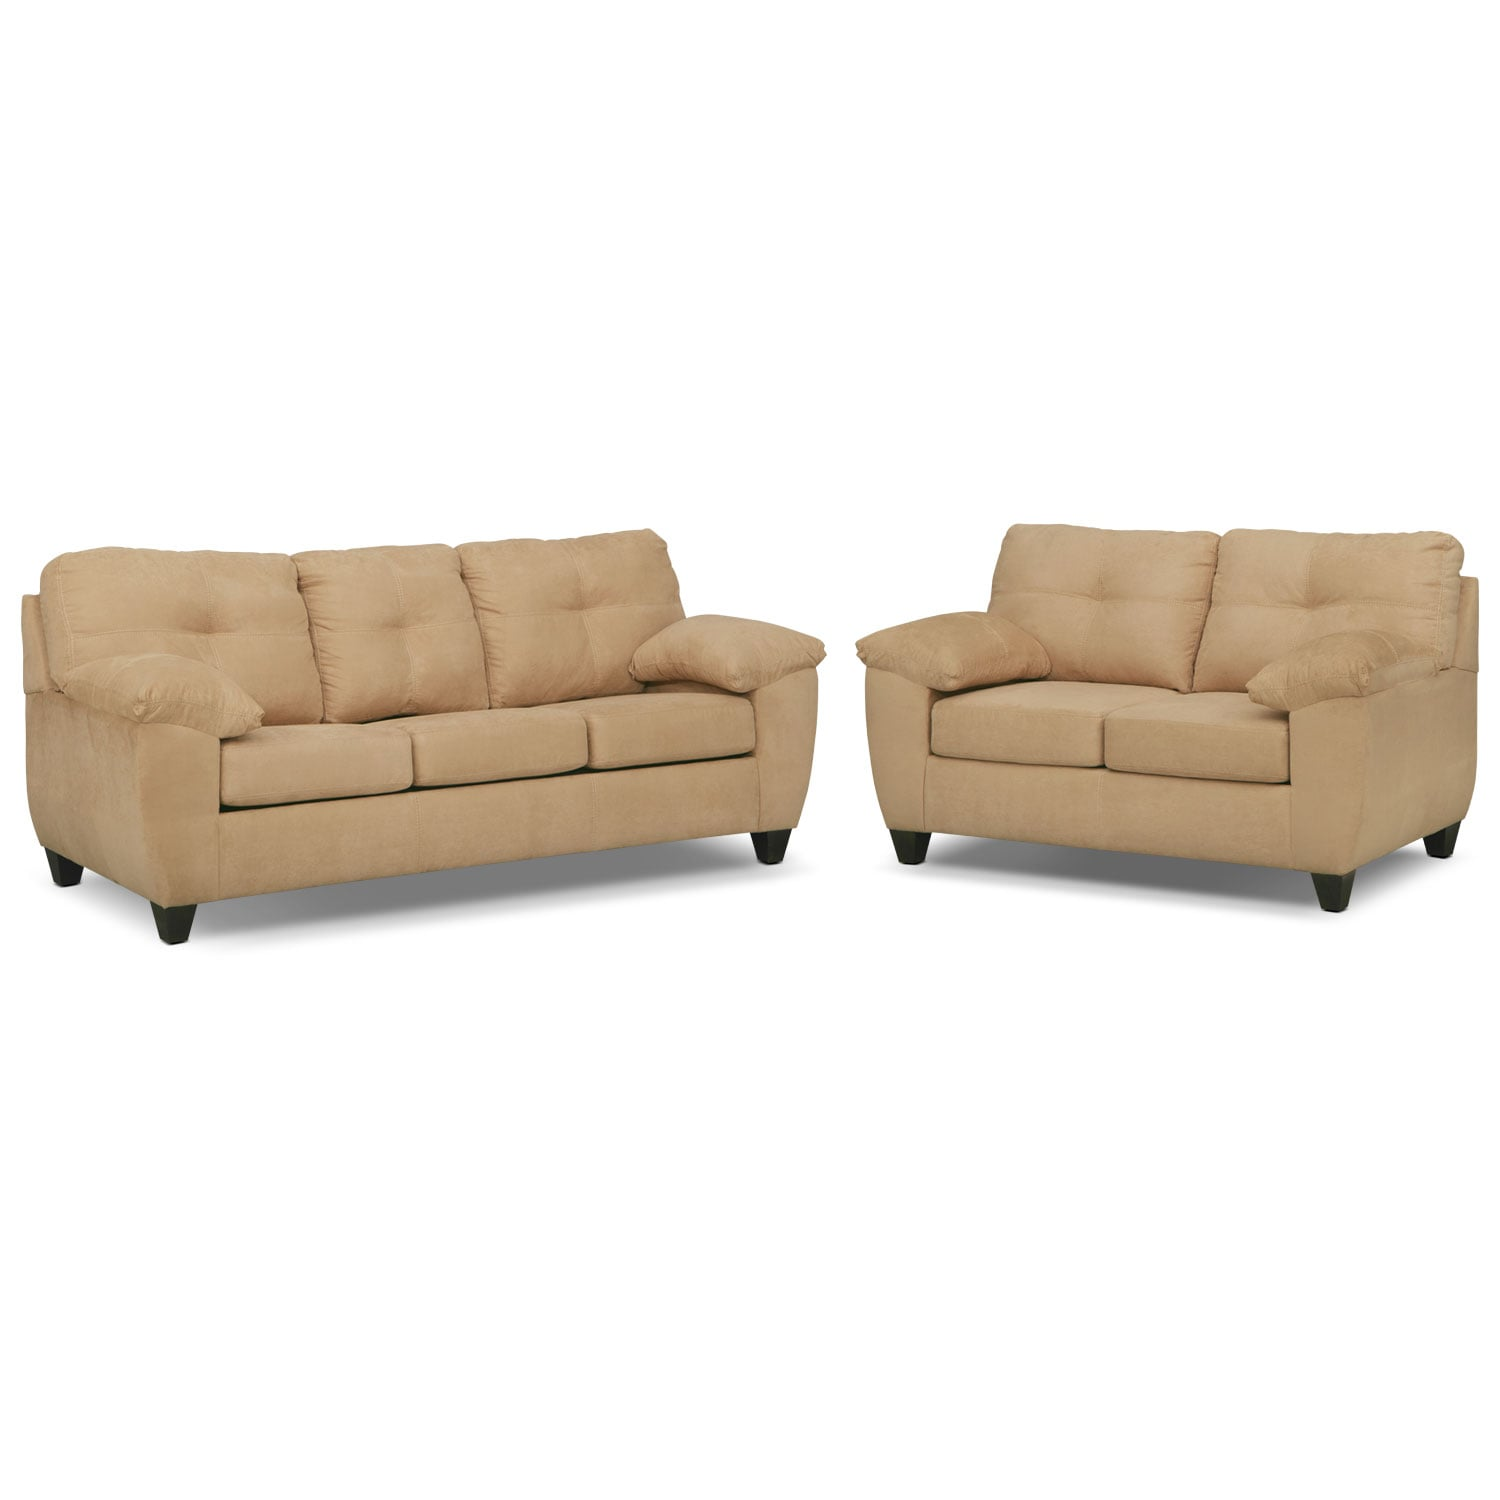 Ricardo Queen Memory Foam Sleeper Sofa And Loveseat Set Camel Value City Furniture And